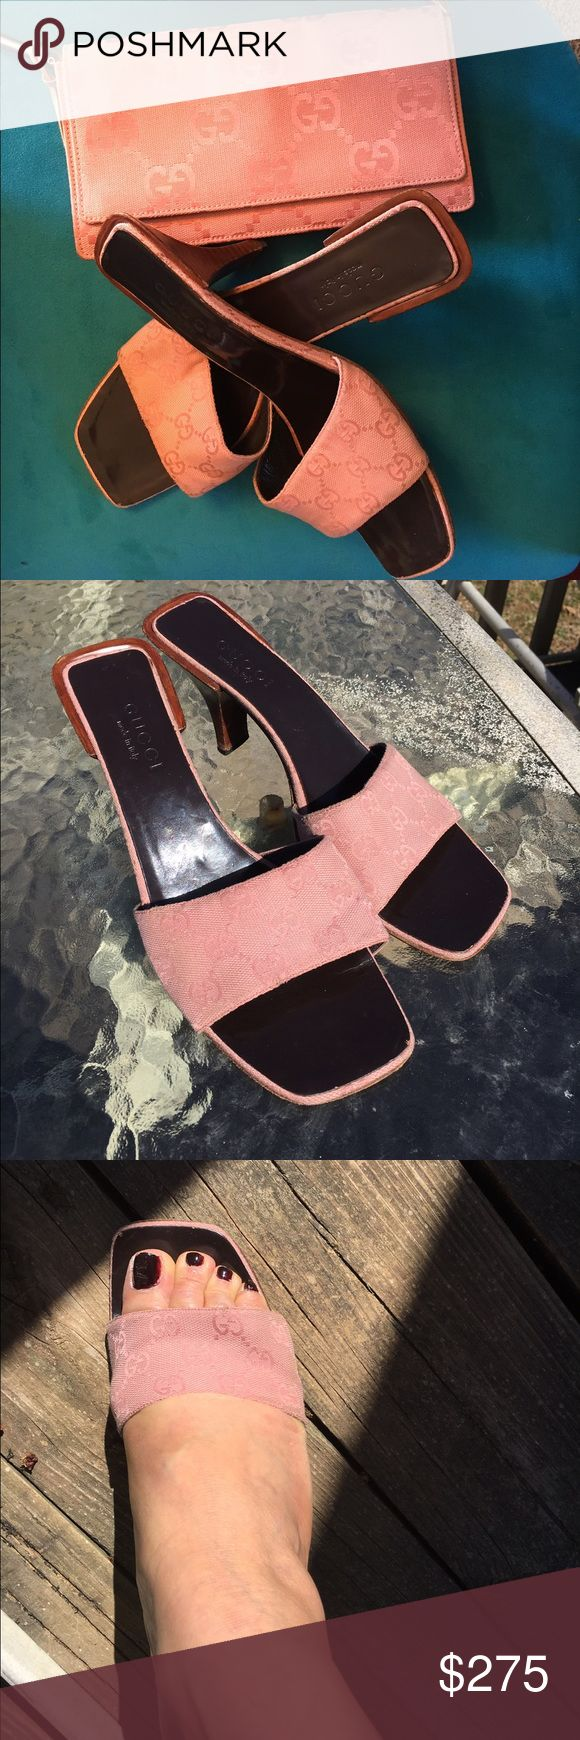 """Gucci Authentic signature Sandals & Purse Gucci signature """"G"""" pale pink slide & matching bag. I loved wearing these with jean, shorts & skirts. Starting to show wear a few scuffs & scratches around the heel area. But life isn't over for theses sexy cute mules. Worn condition. Price to reflect wear. Size 9• Bag is like new. Price$ for both Gucci Shoes"""